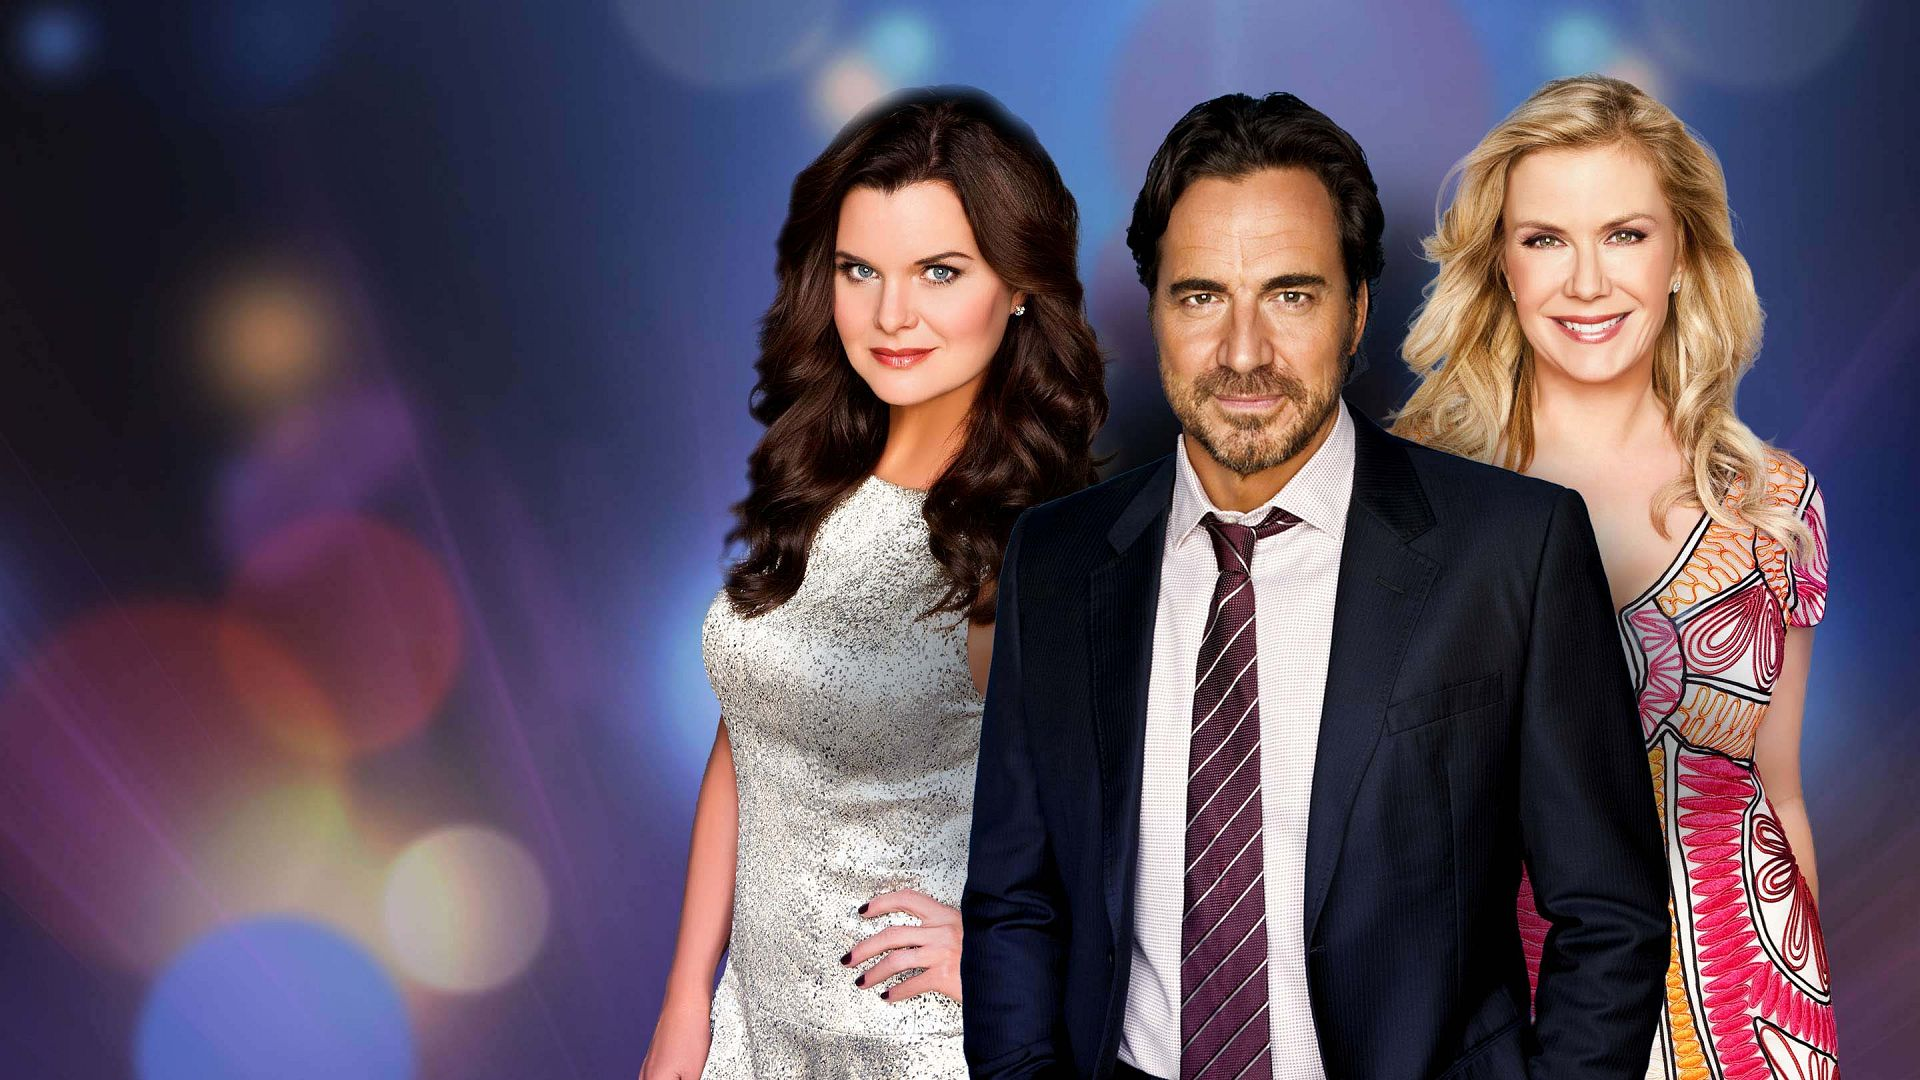 the bold and the beautiful full episodes online free